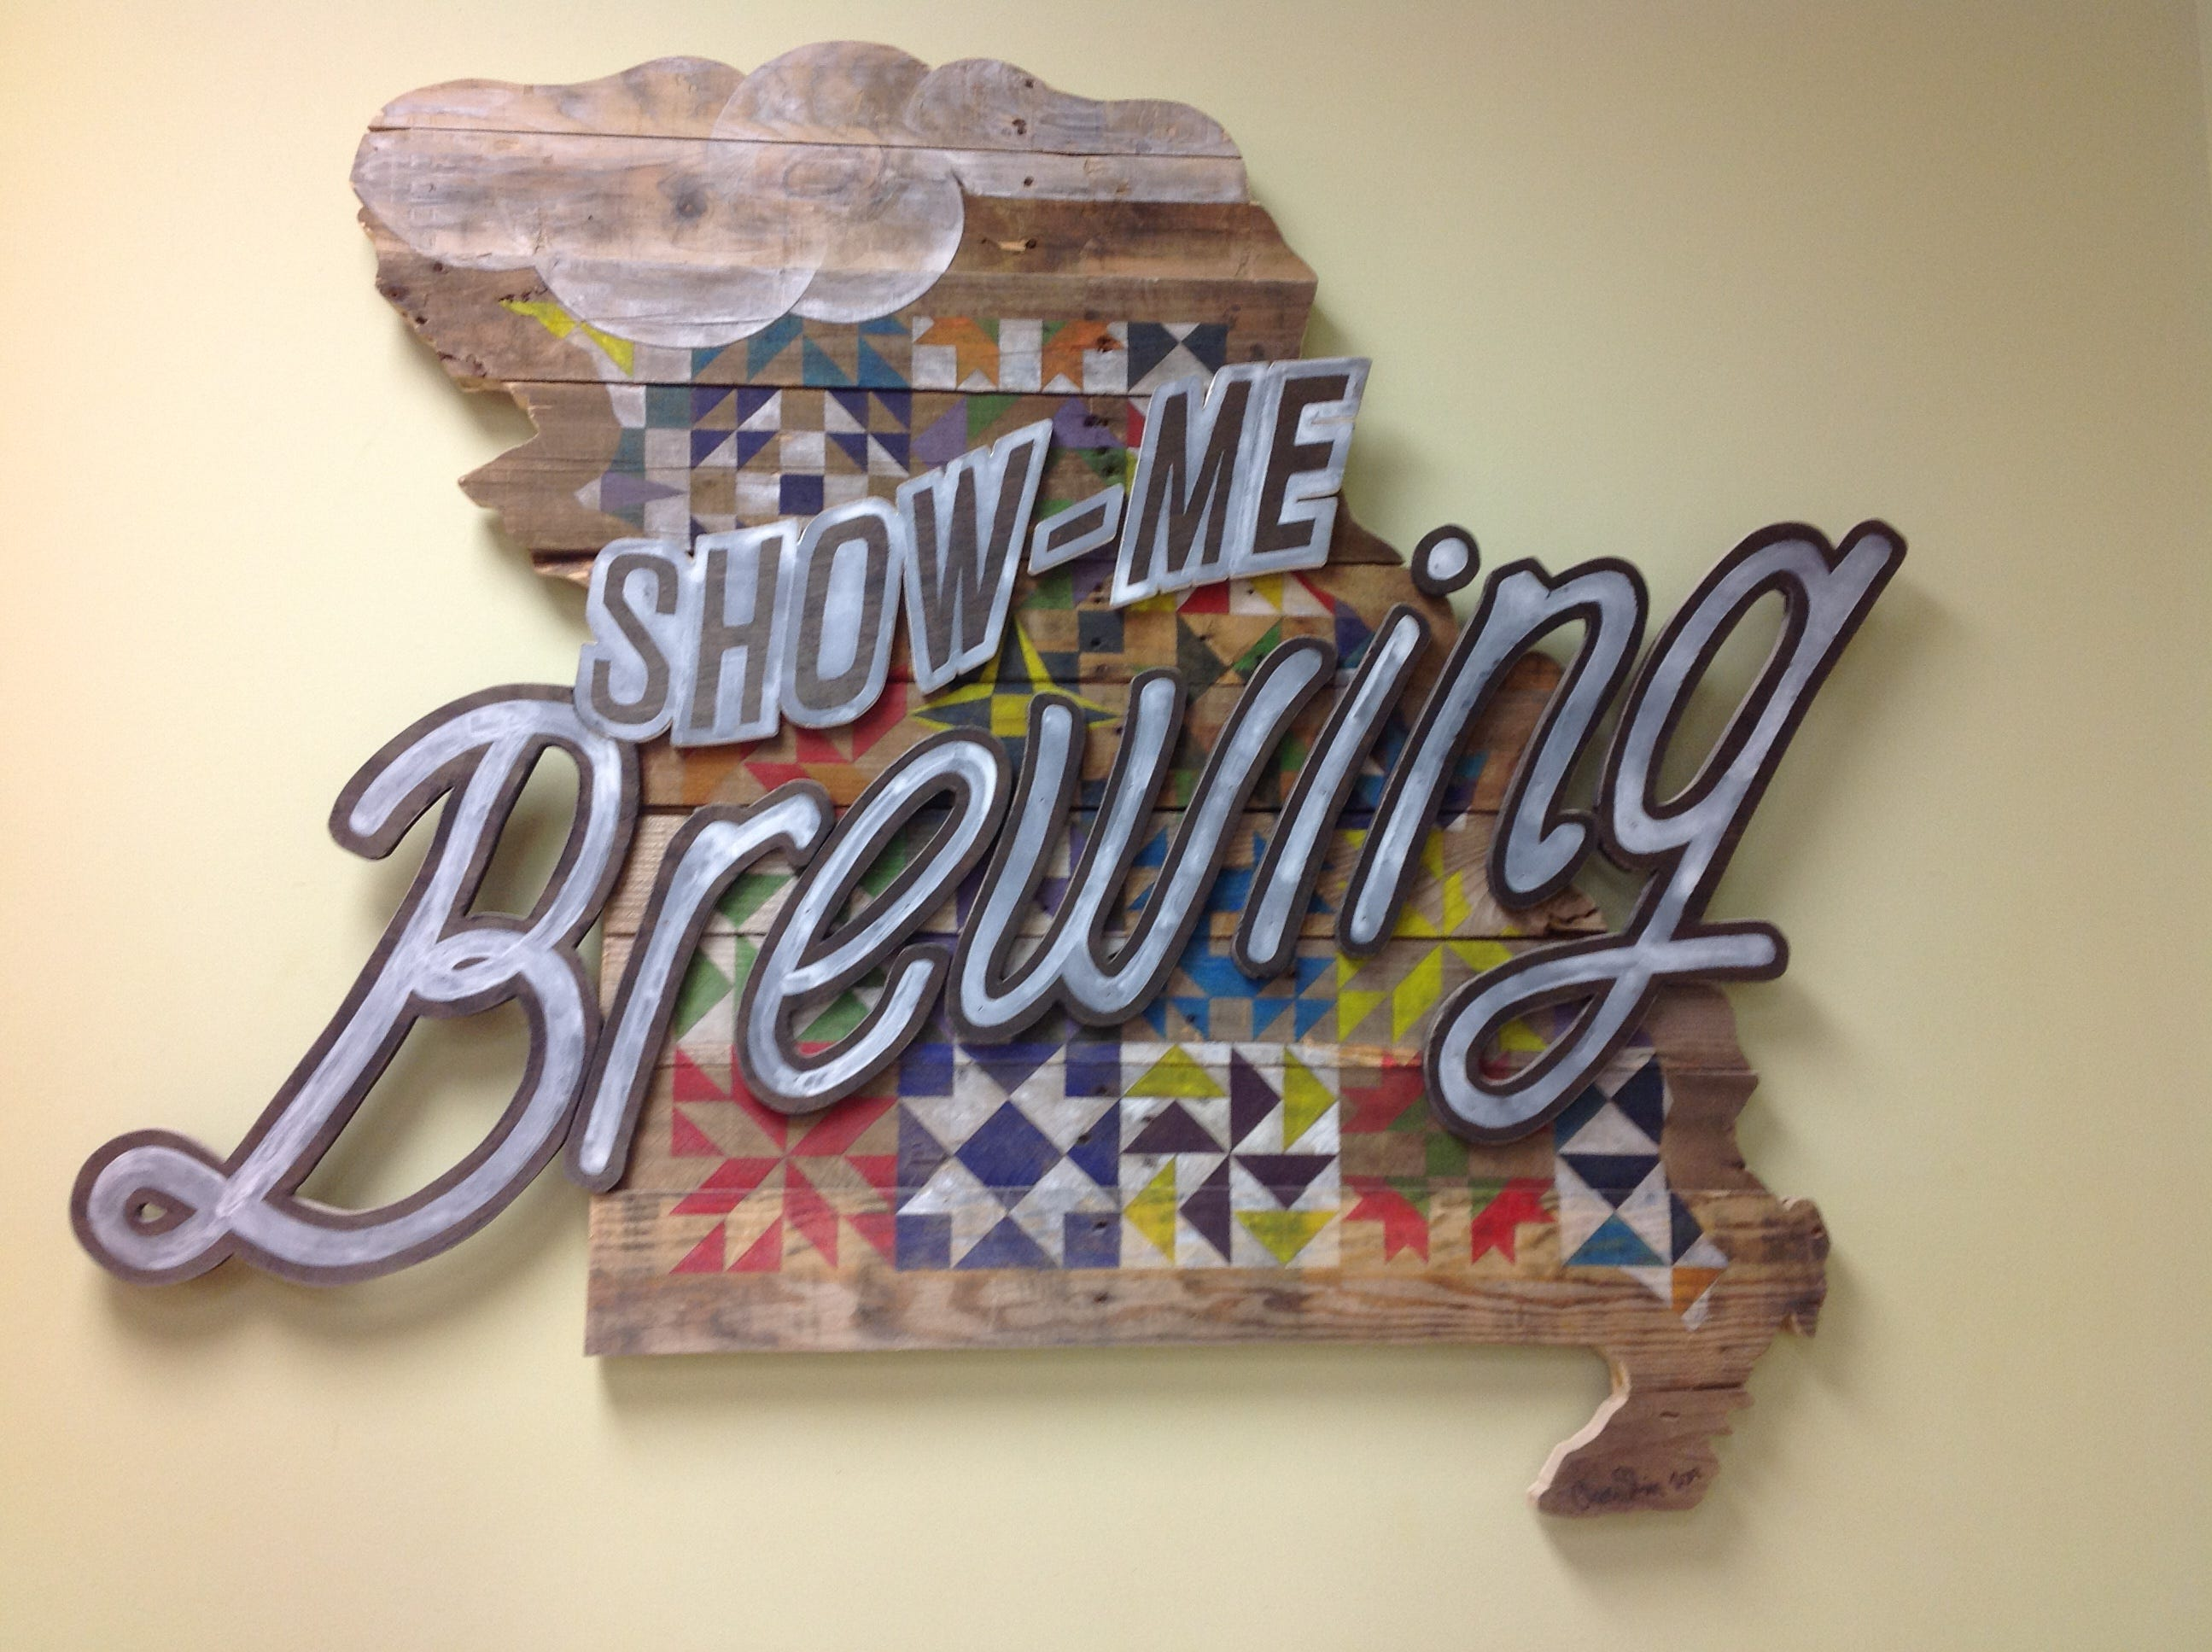 Show-Me Brewing, 1925 E. Bennett St., is a microbrewery, a home beer and wine brewing supply store, and hosts parties where people can learn how to brew their own beer.